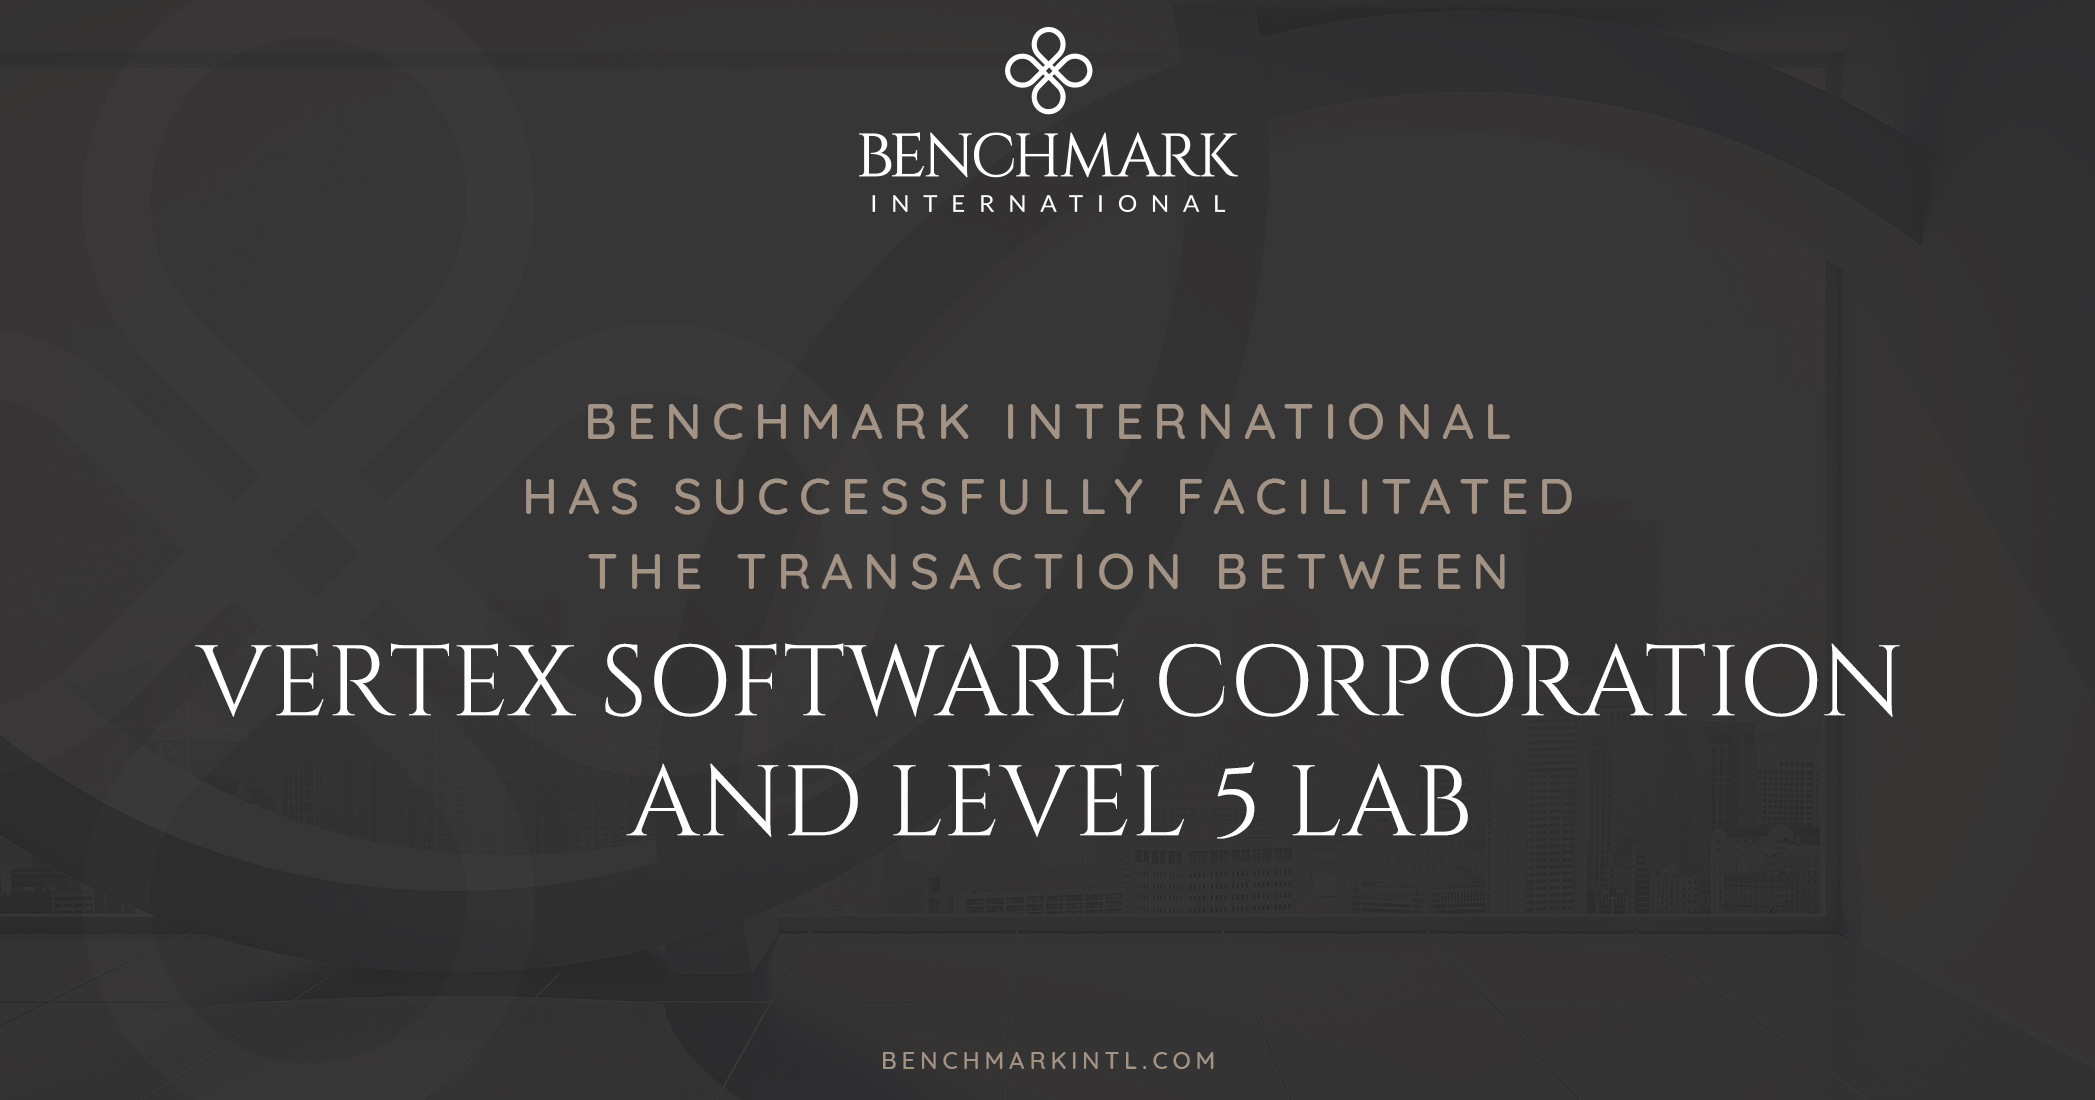 Benchmark International Successfully Facilitated the Transaction Between Vertex Software Corporation and Level 5 Lab